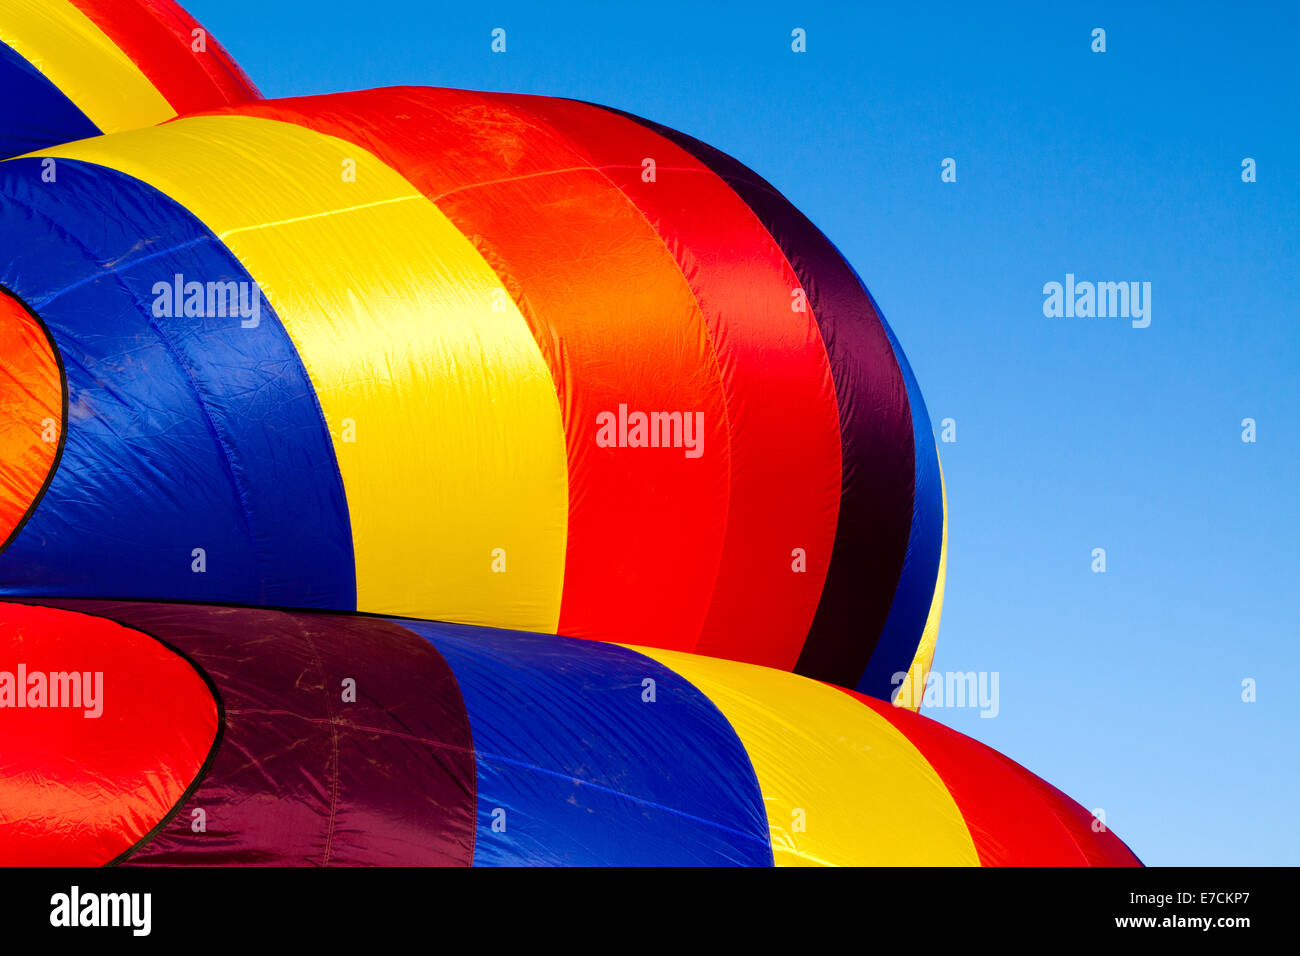 Detail of a hot-air balloon being inflated in early morning light Stock Photo